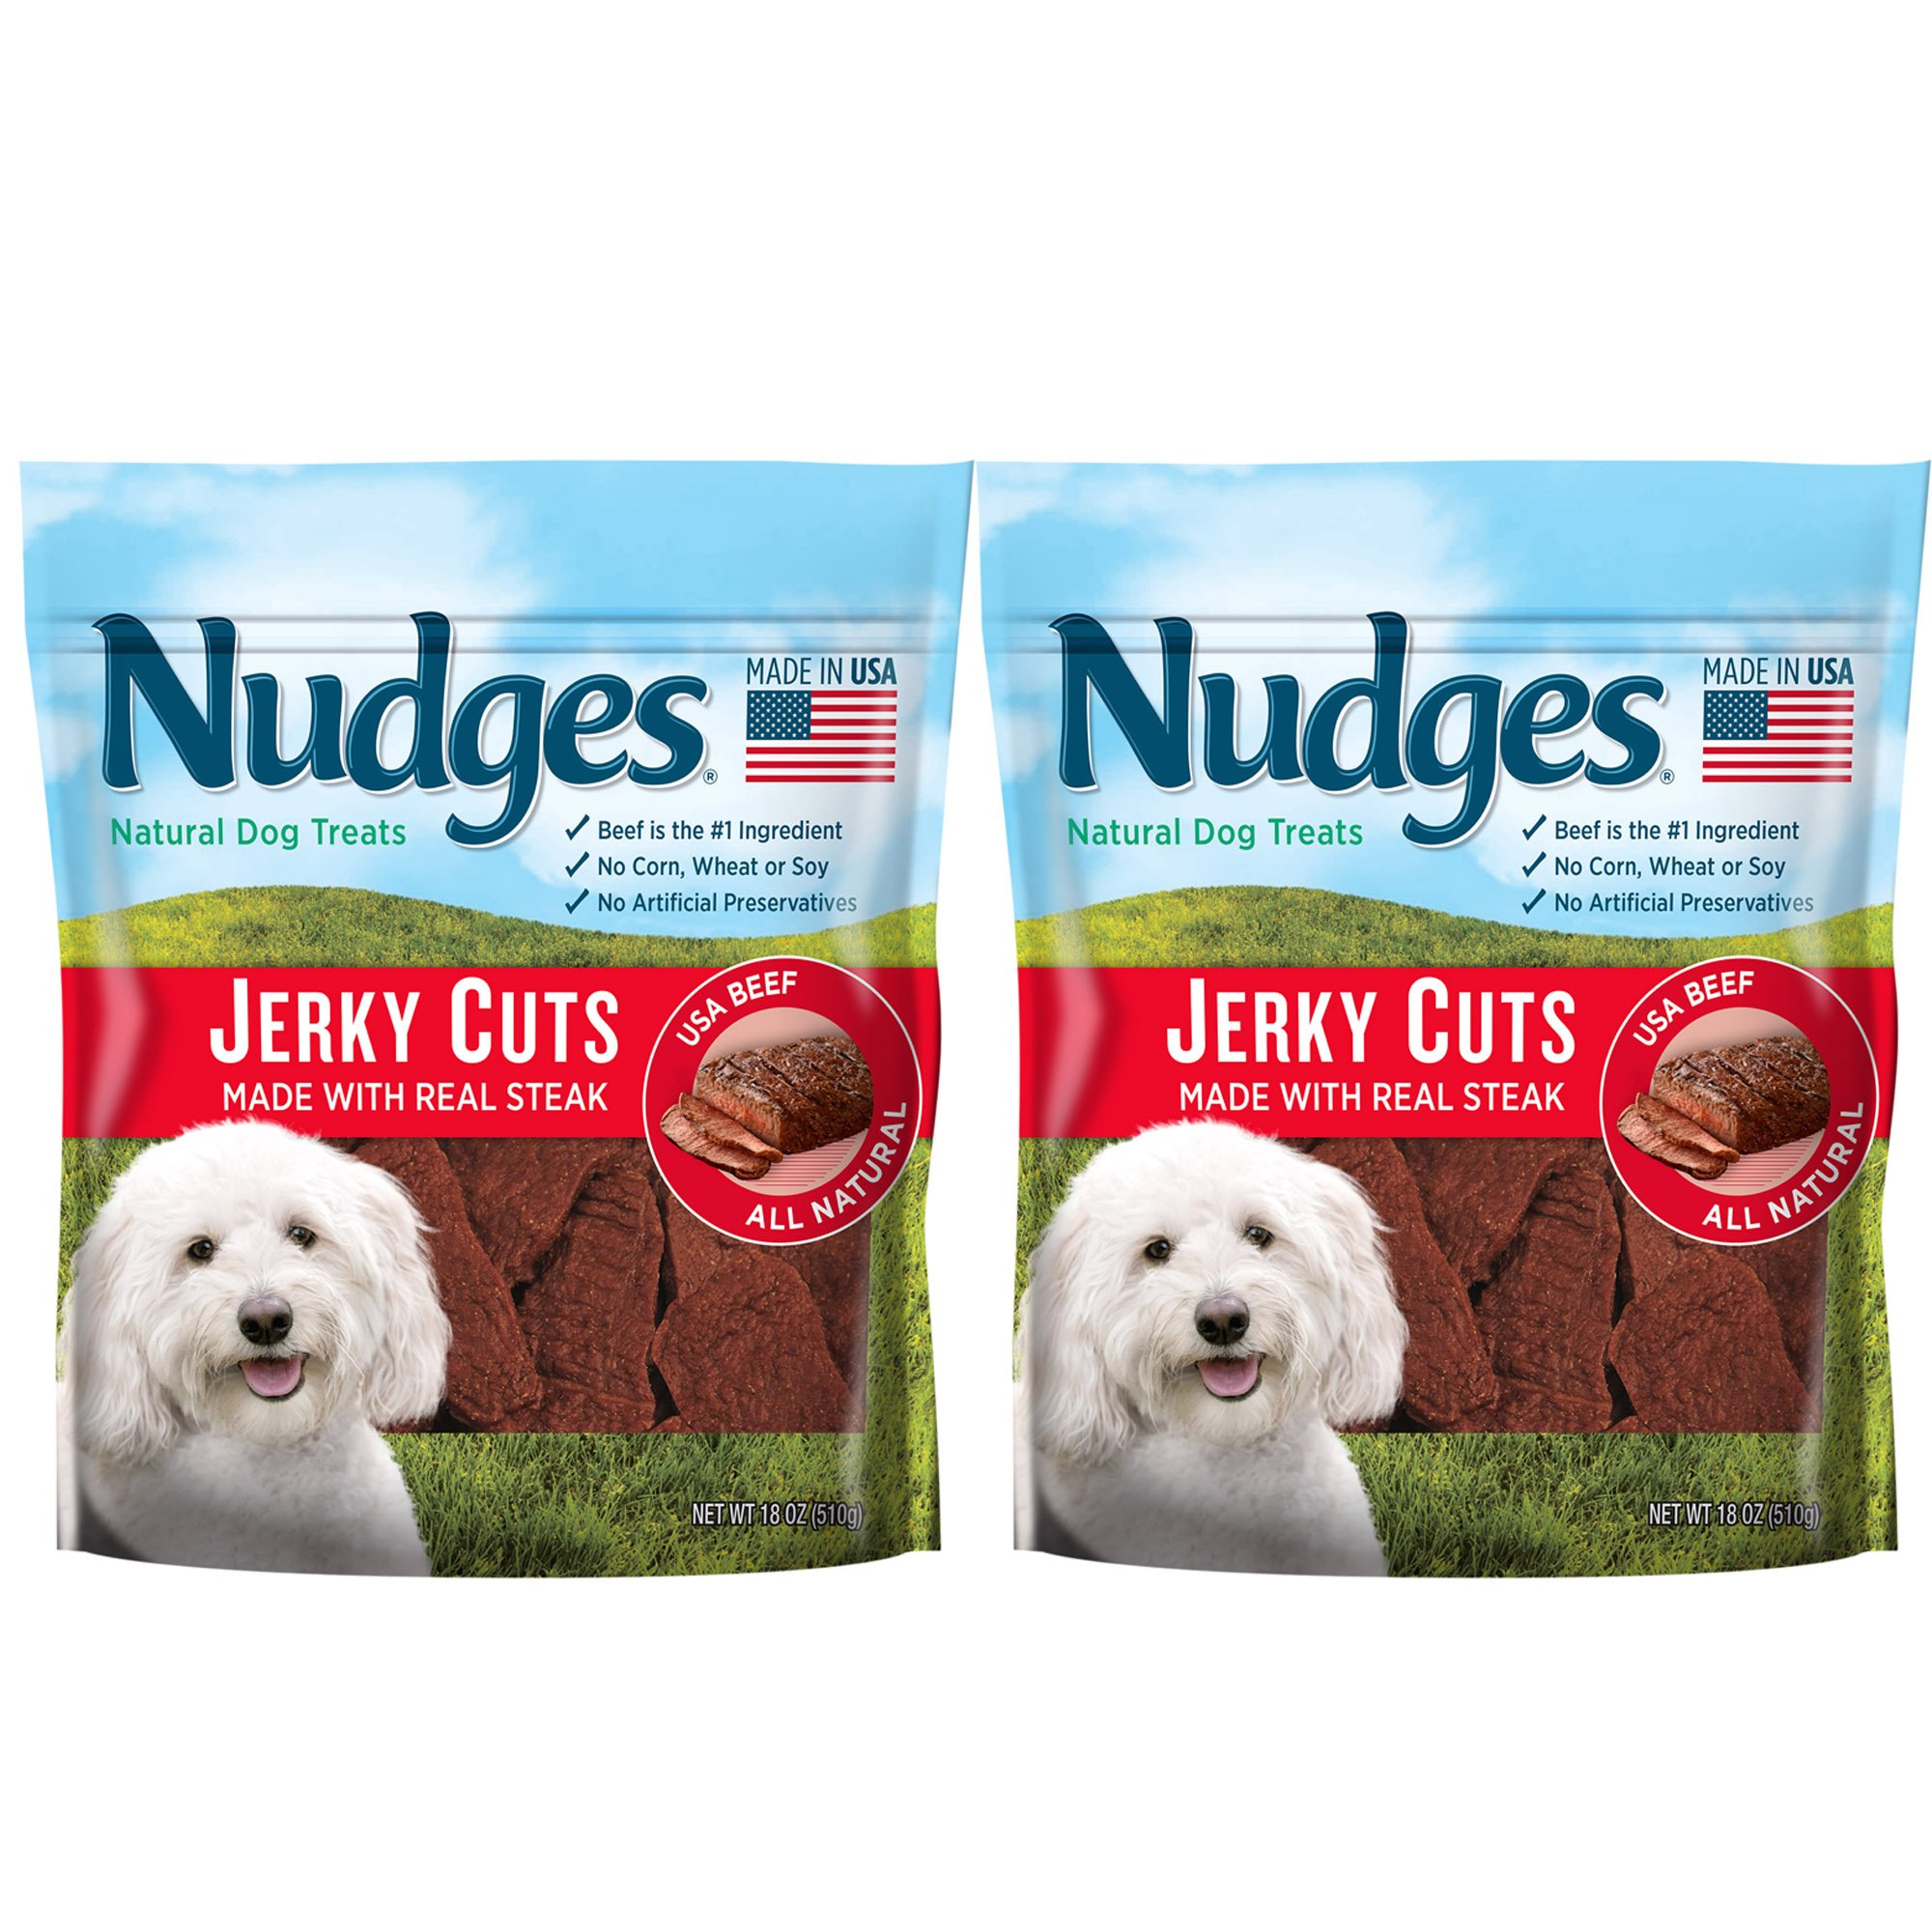 Nudges Jerky Cuts Natural Dog Treats made with Real Steak 18oz (2 pack)